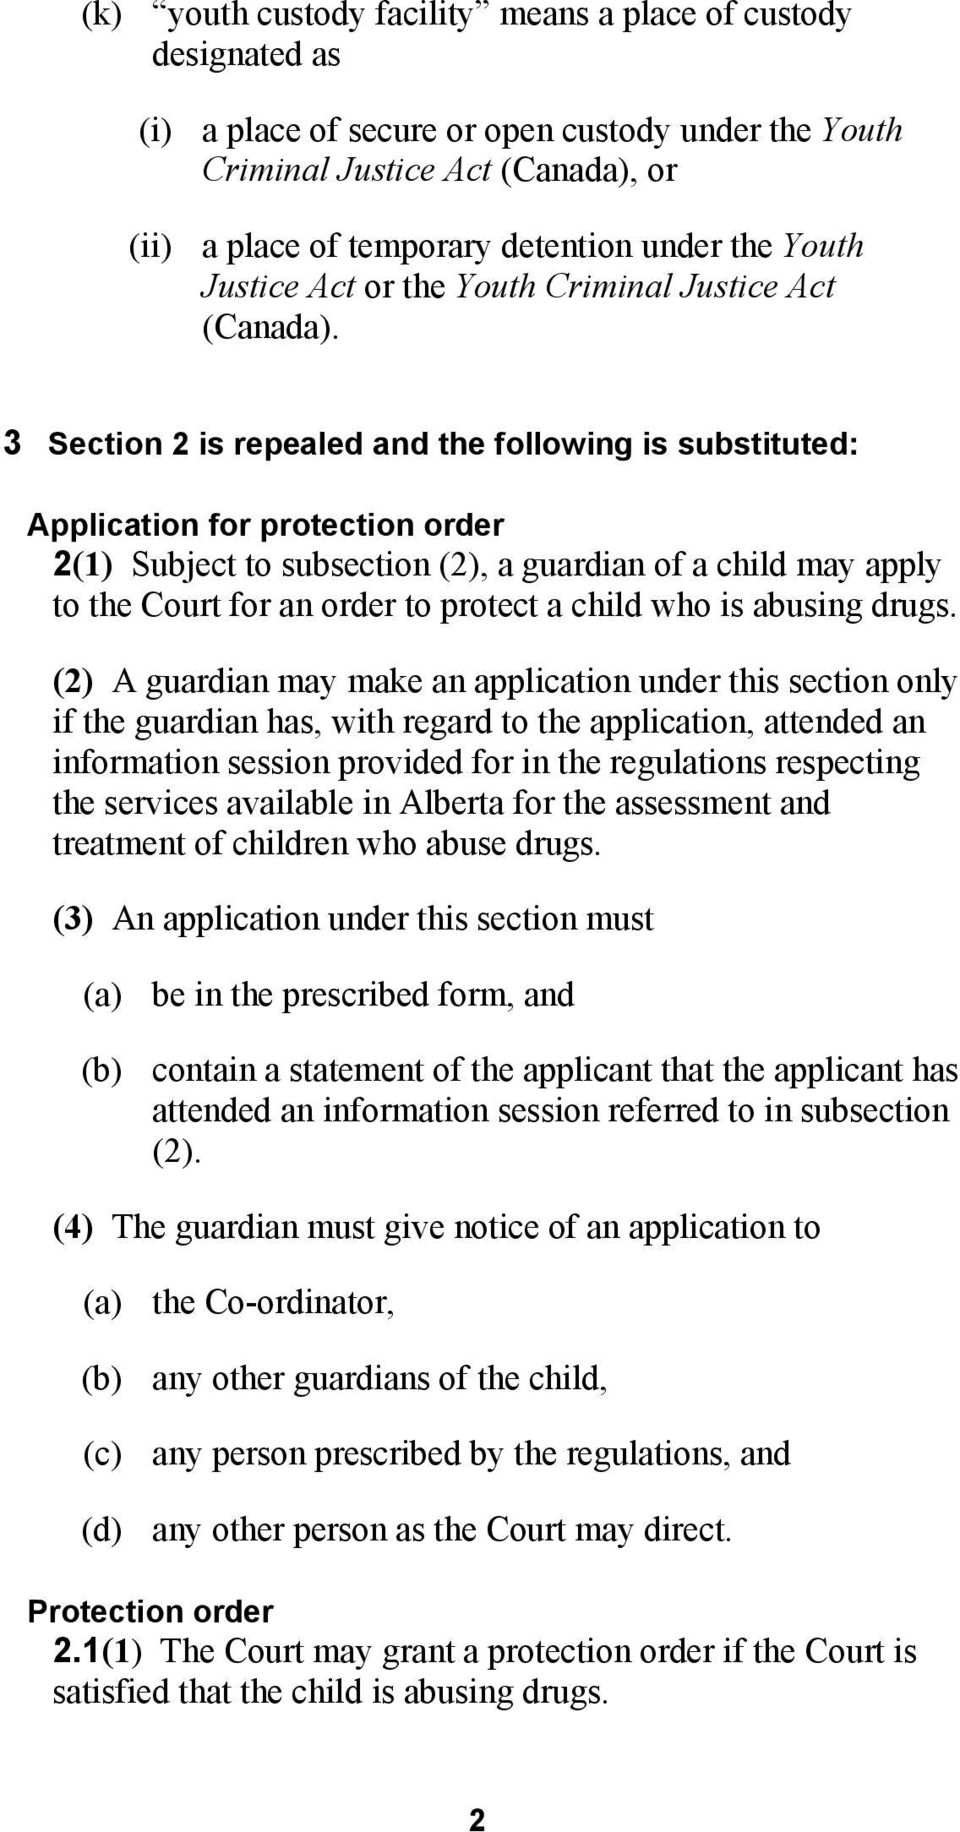 3 Section 2 is repealed and the following is substituted: Application for protection order 2(1) Subject to subsection (2), a guardian of a child may apply to the Court for an order to protect a child